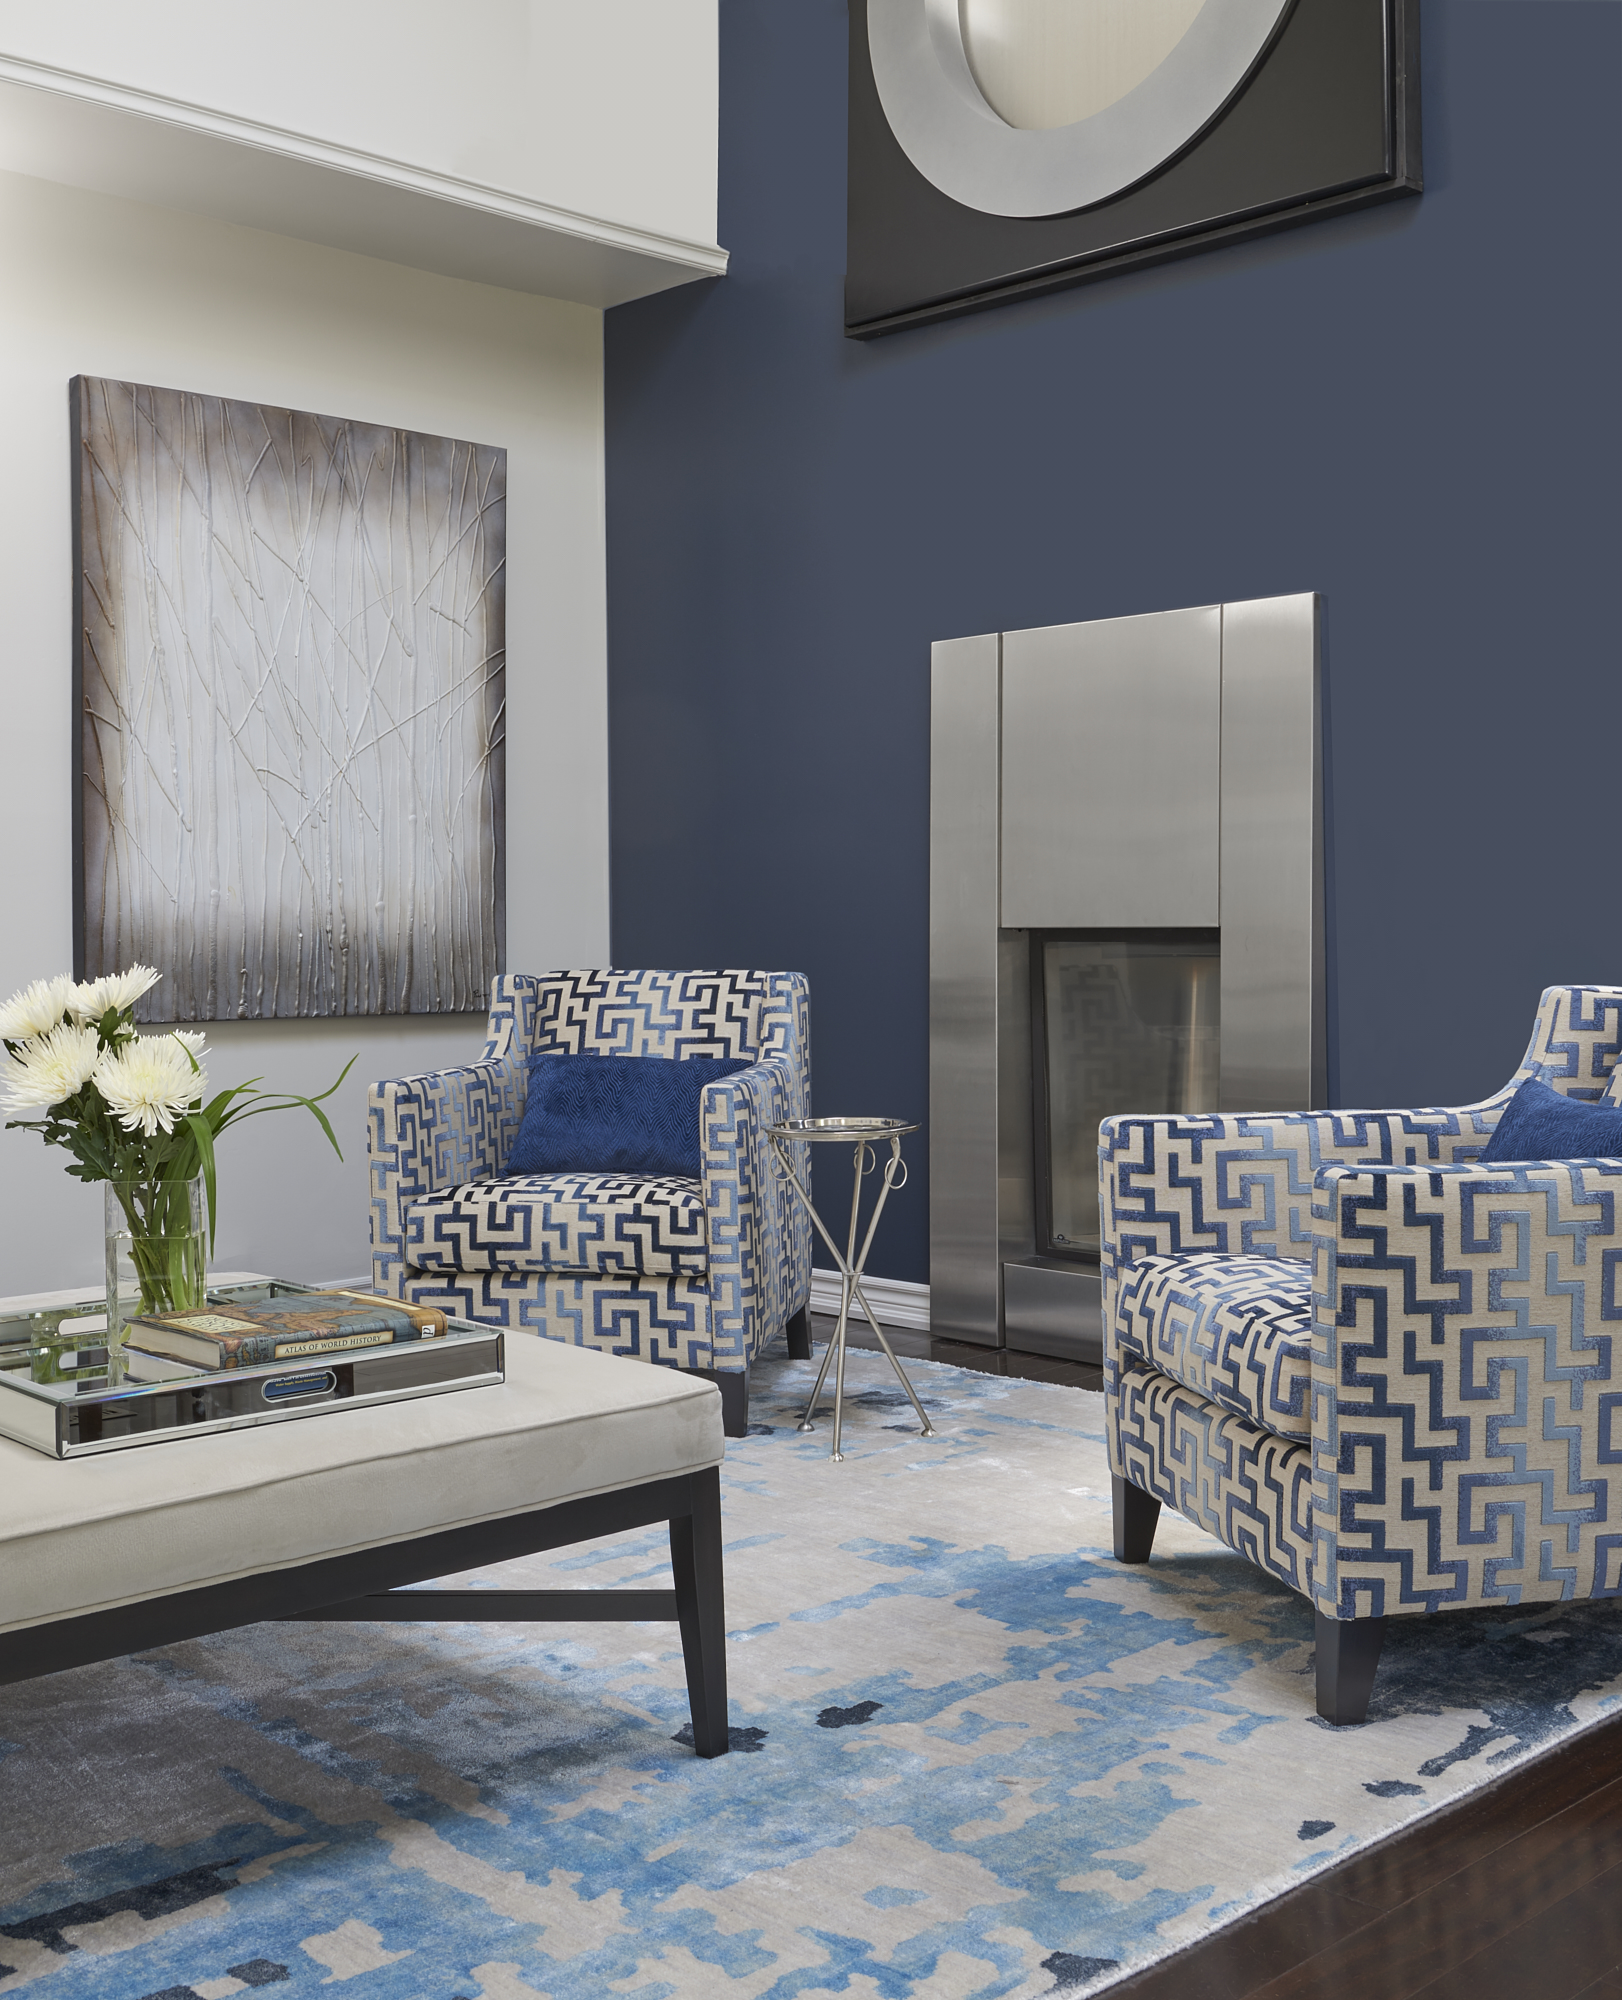 Benjamin Moore Classic Gray walls and Hale Navy feature wall